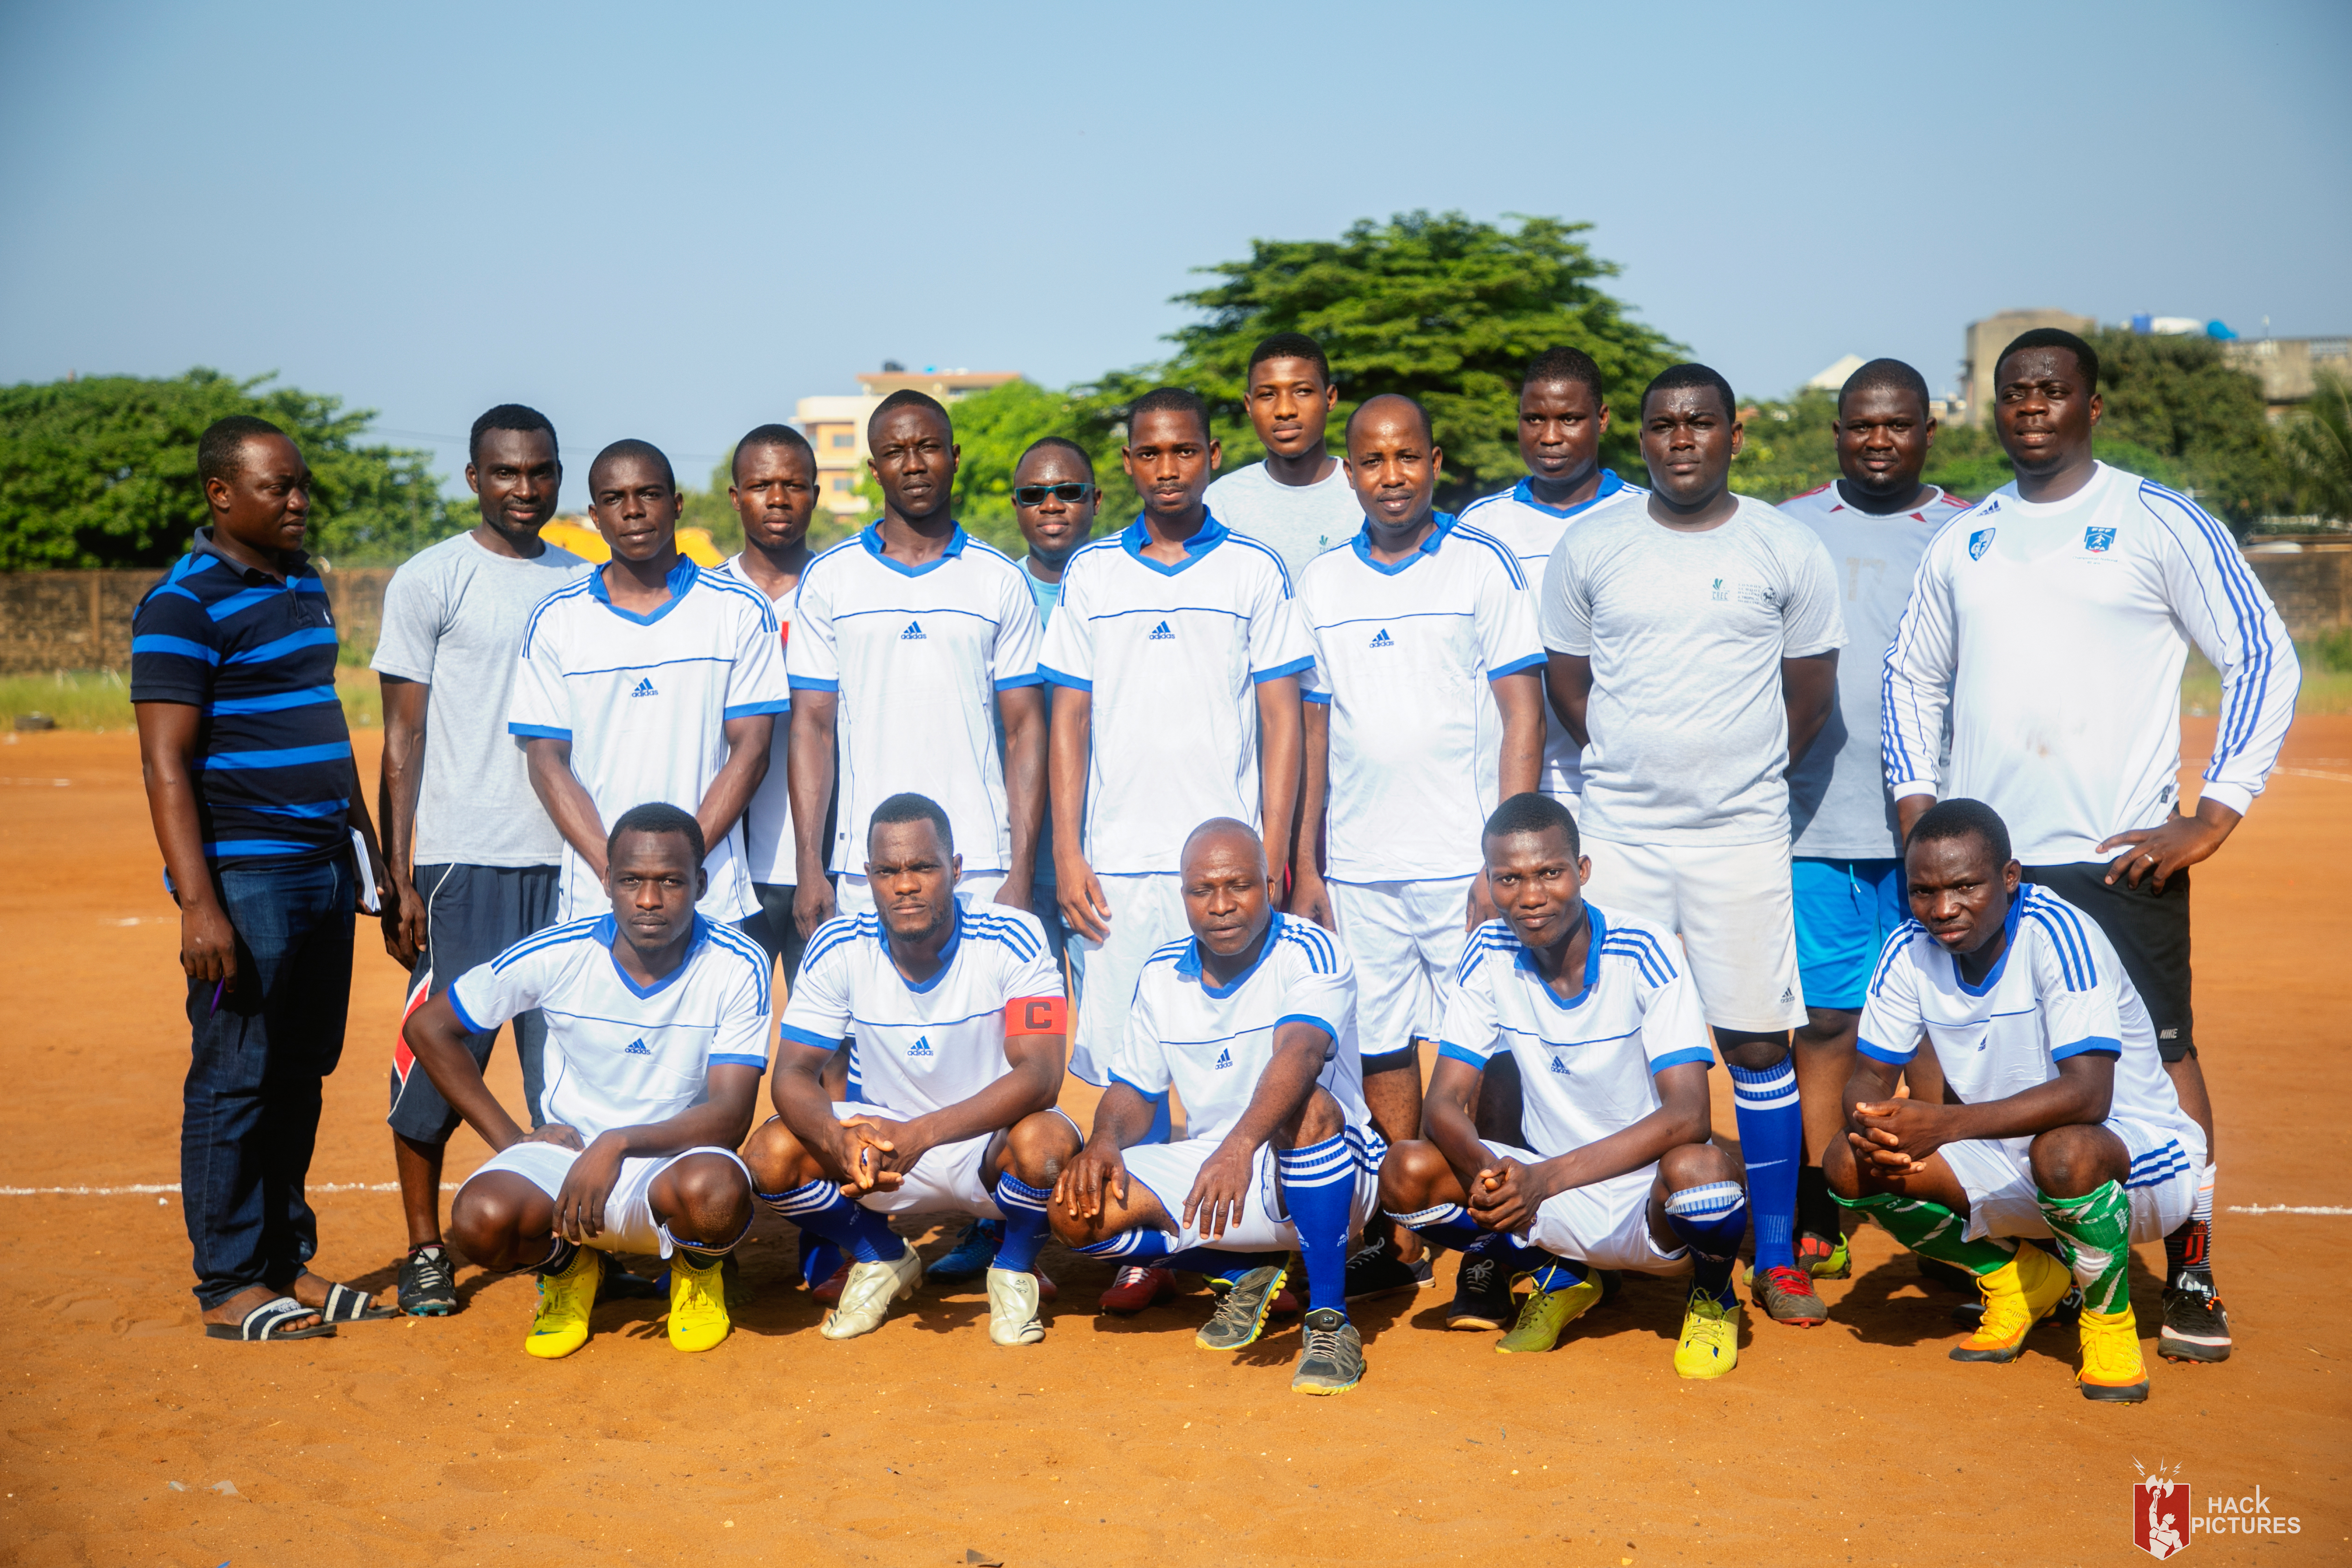 CREC-LSHTM 2019 Football Team